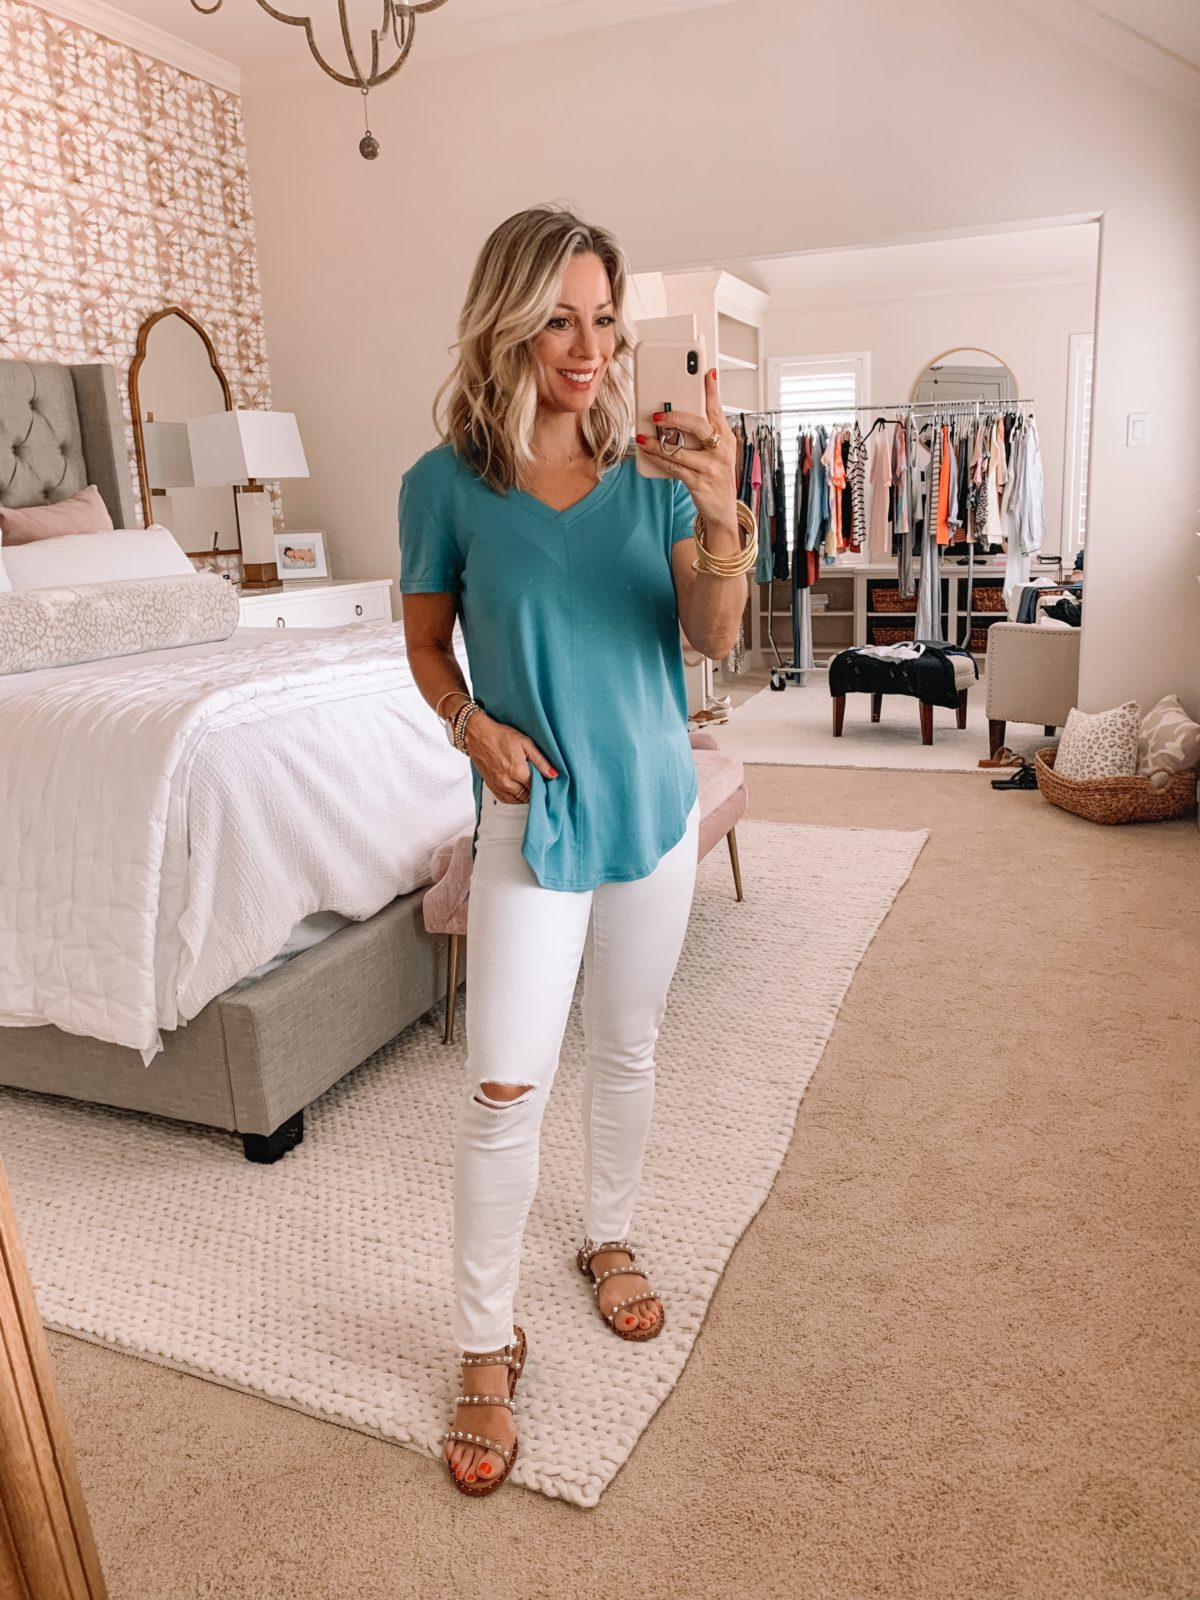 Amazon Fashion Finds, V-Neck Tunic Top, White Jeans, Studded Sandals